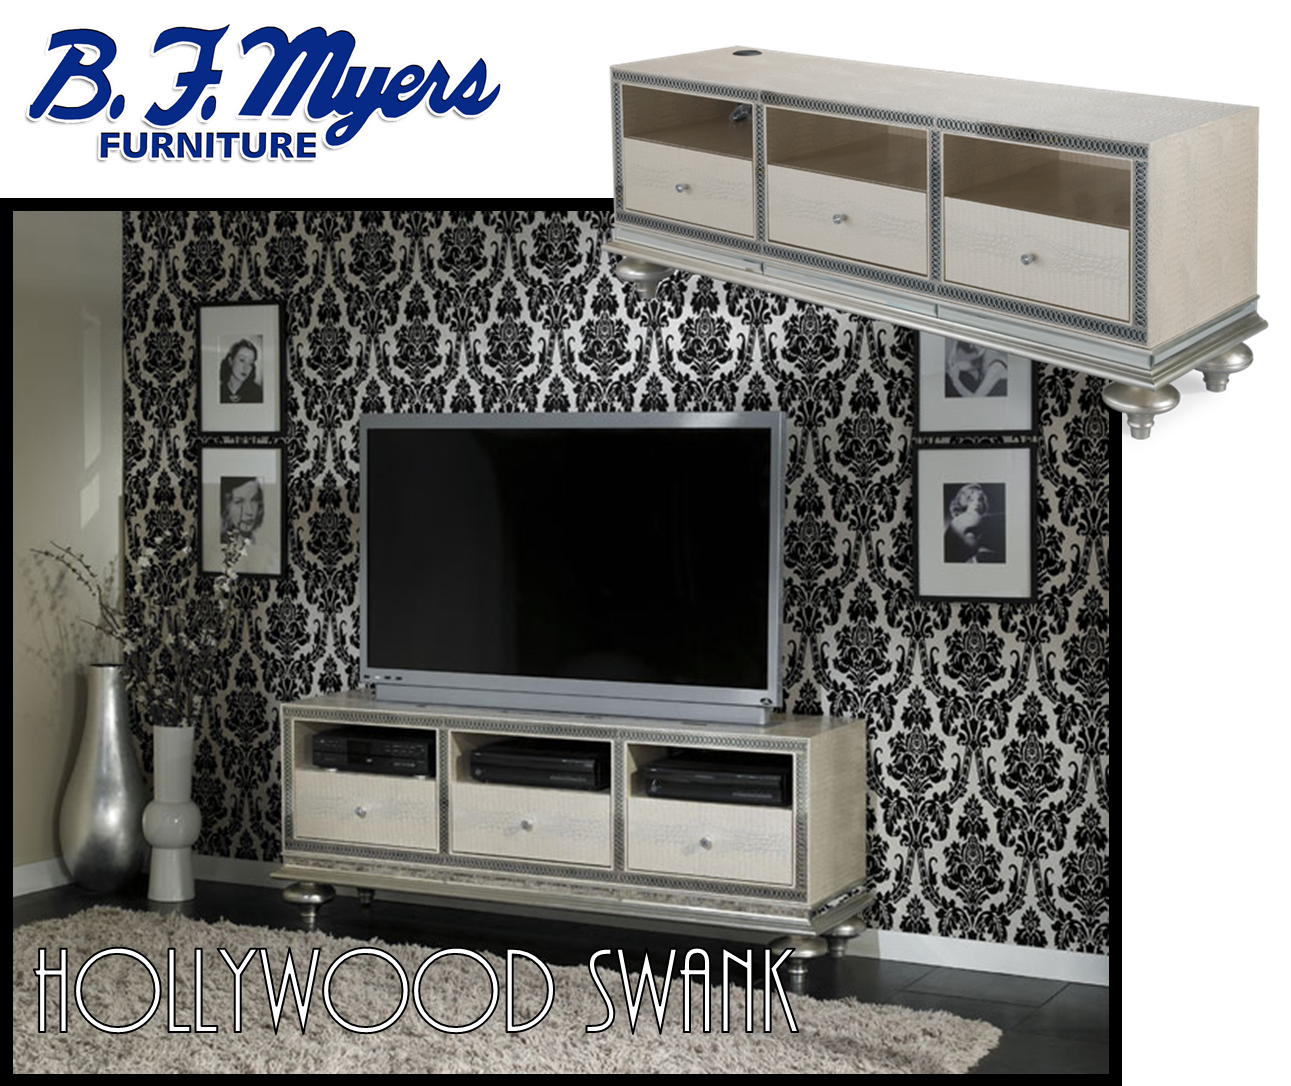 #HollywoodSwank Home Entertainment Console AVAILABLE AT B.F. MYERS FURNITURE  In Goodlettsville, TN